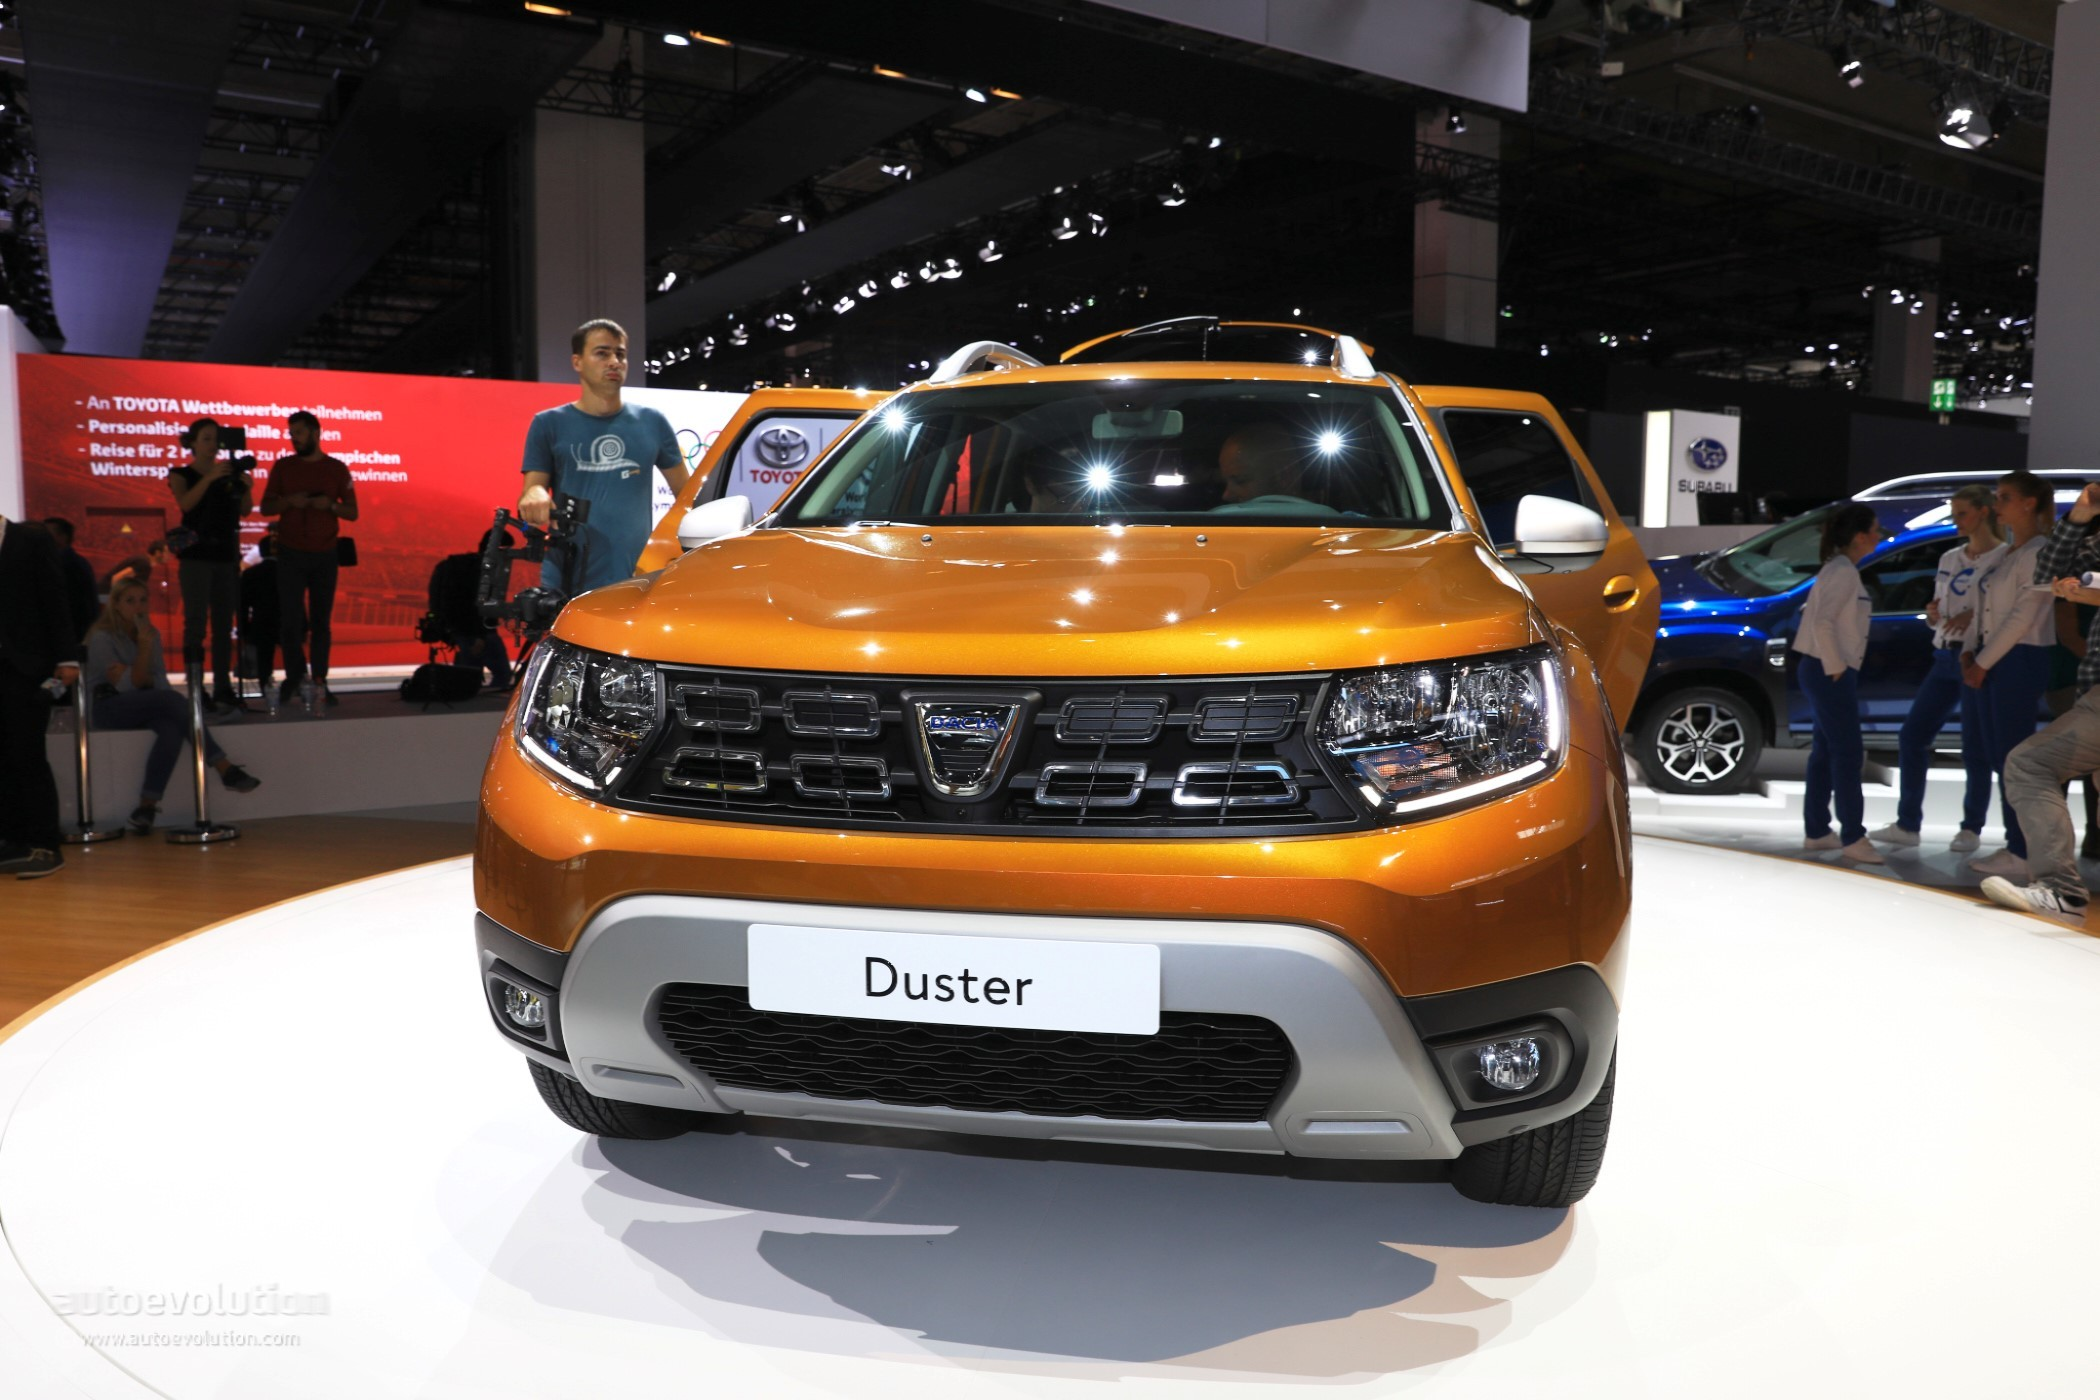 2018 dacia duster 2018 renault duster in 12 live photos autos post. Black Bedroom Furniture Sets. Home Design Ideas